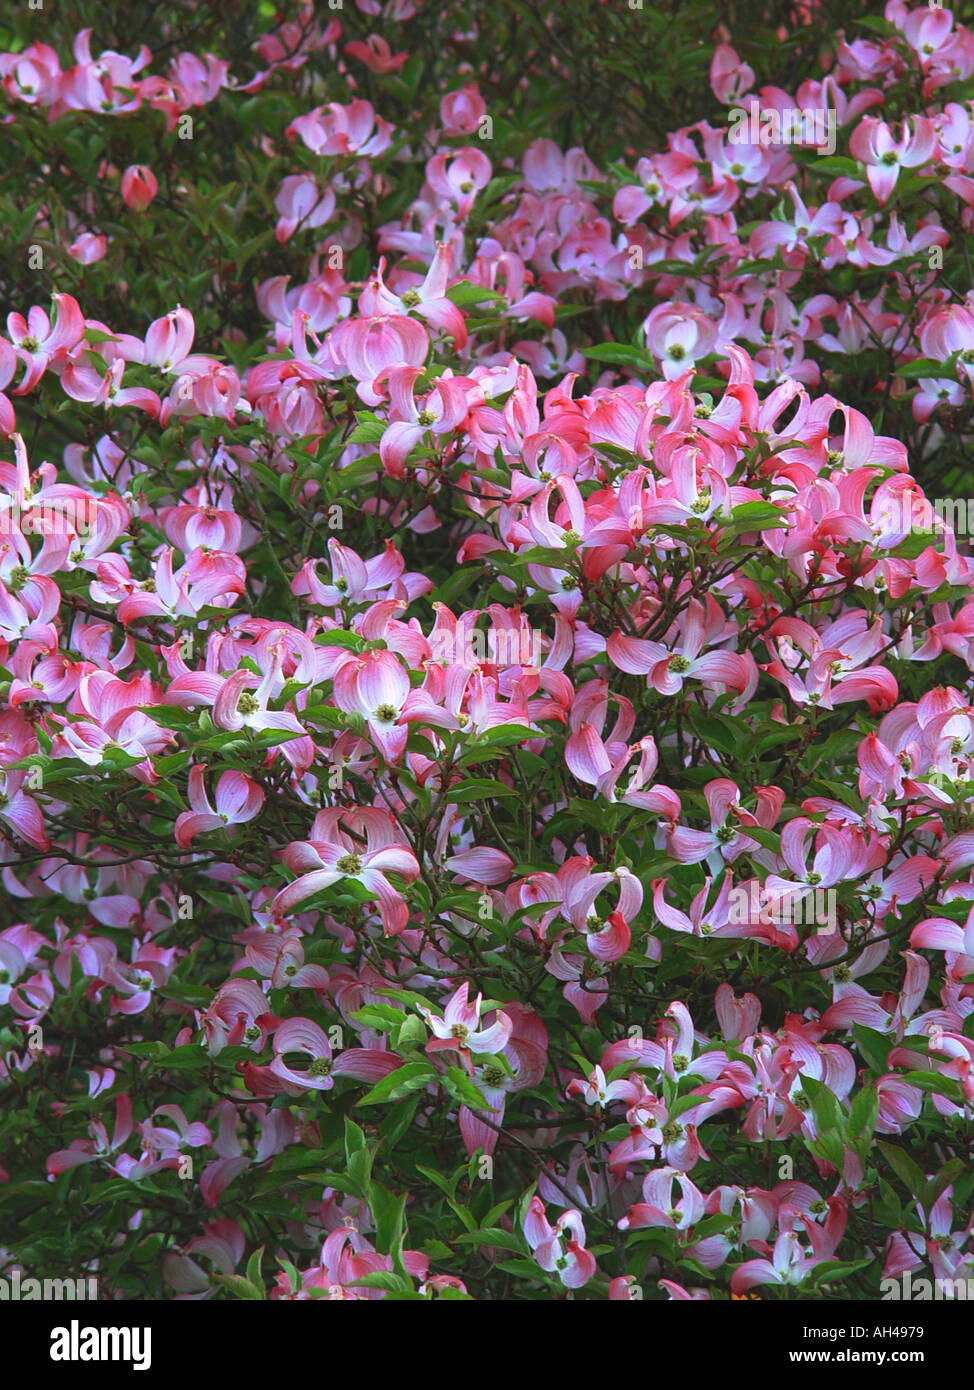 Cornus Florida Rubra Garden Spring Flowering Shrub With Pink Flowers